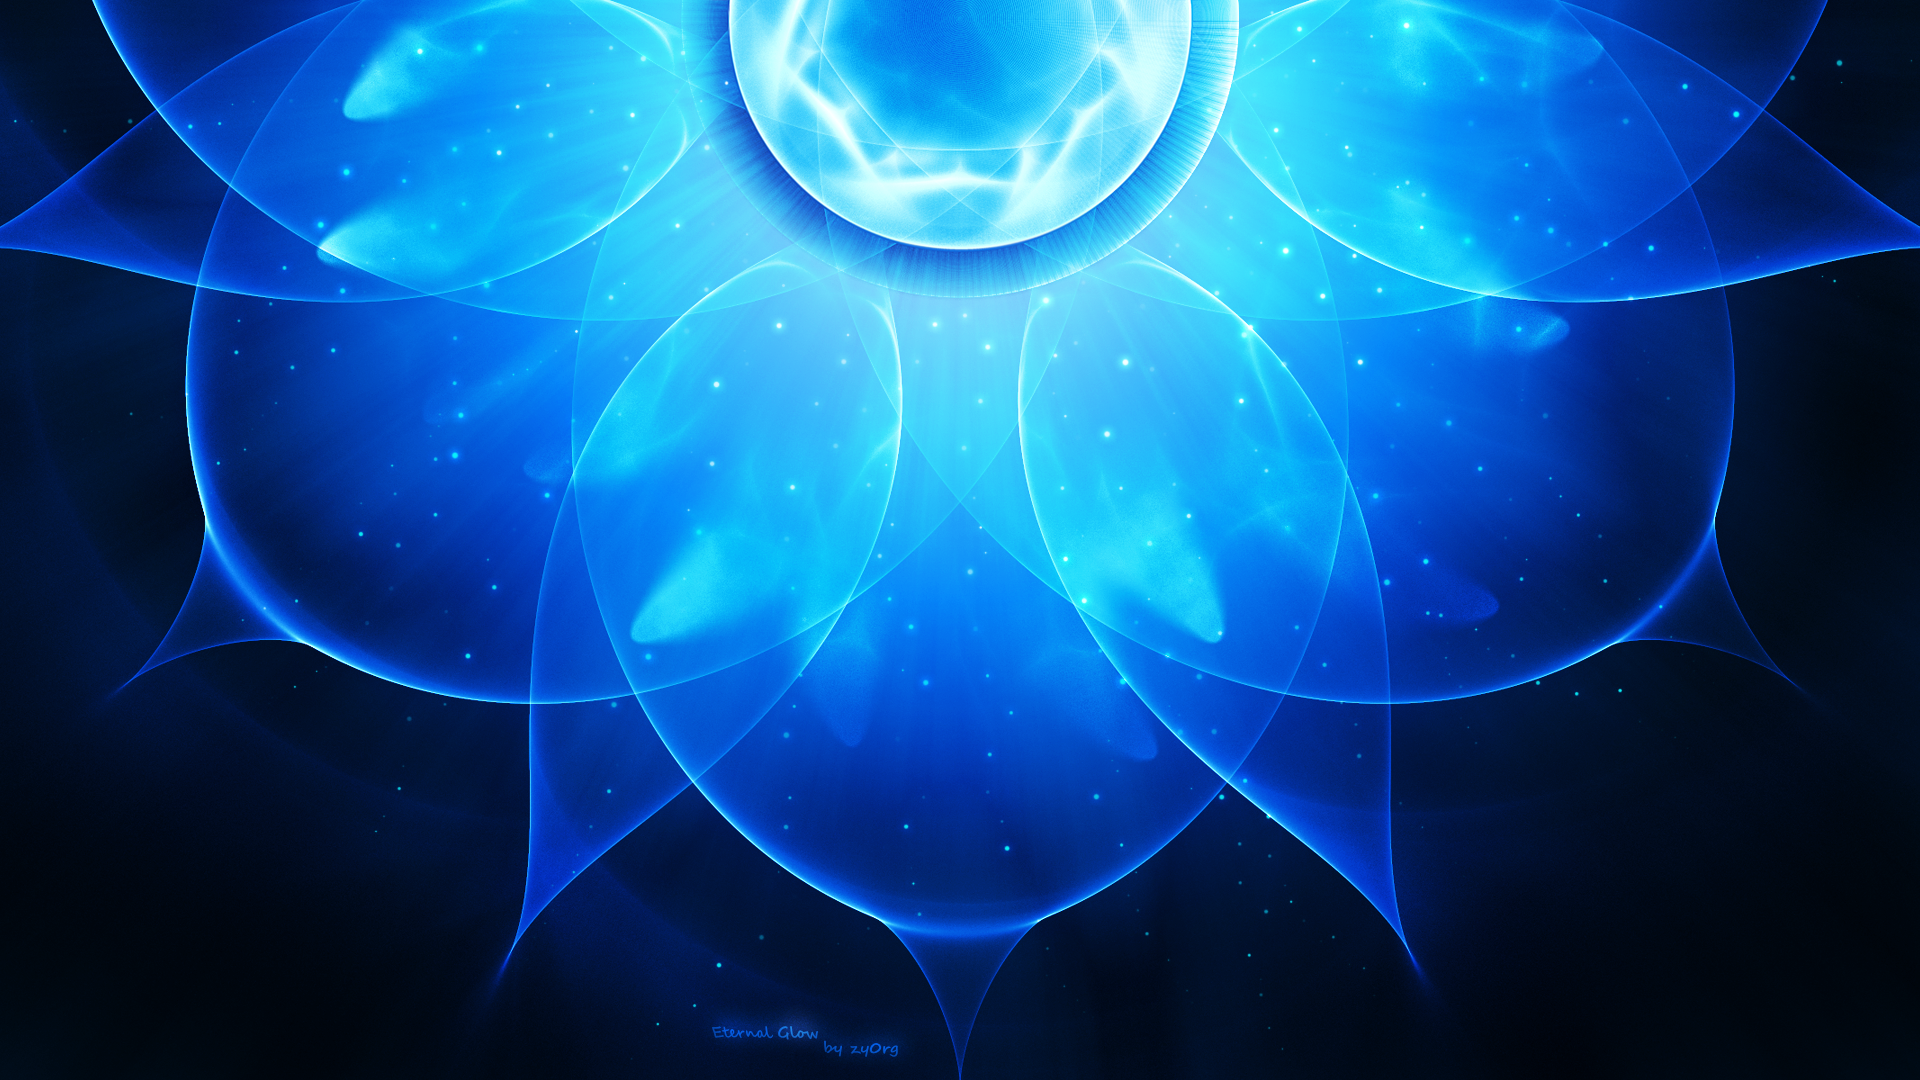 blue abstract wallpaper by - photo #16